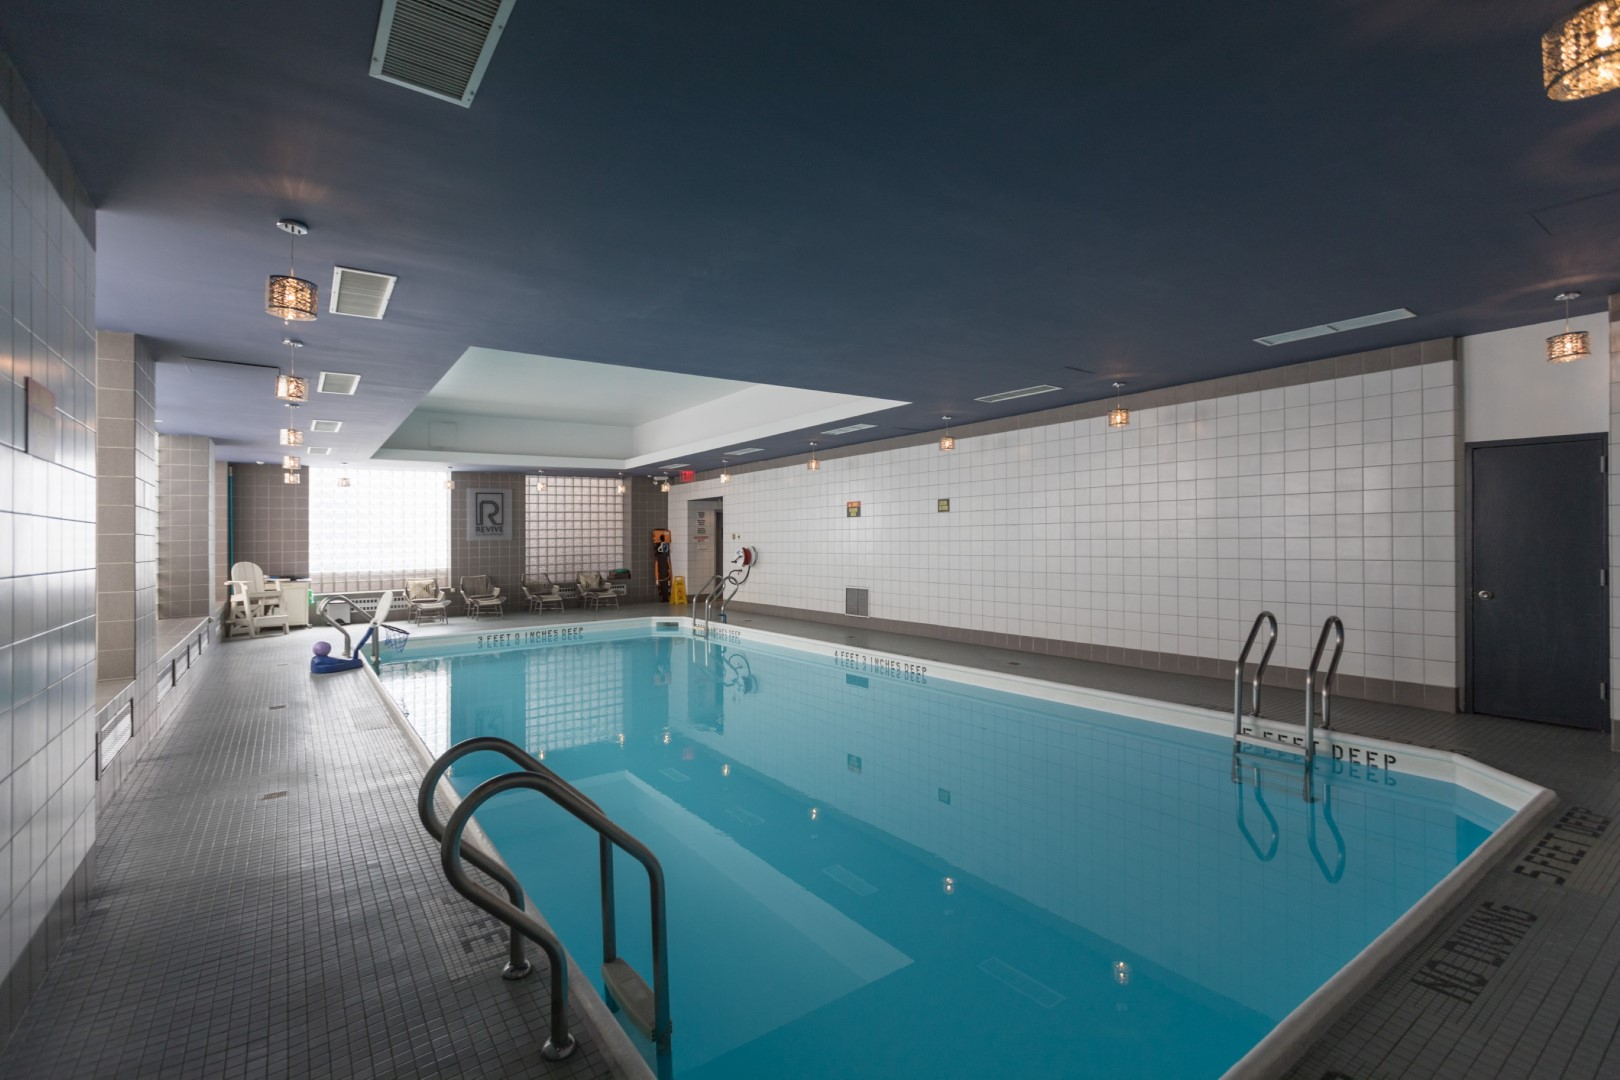 Pool at Ritz Plaza Apartments, Times Square, New York